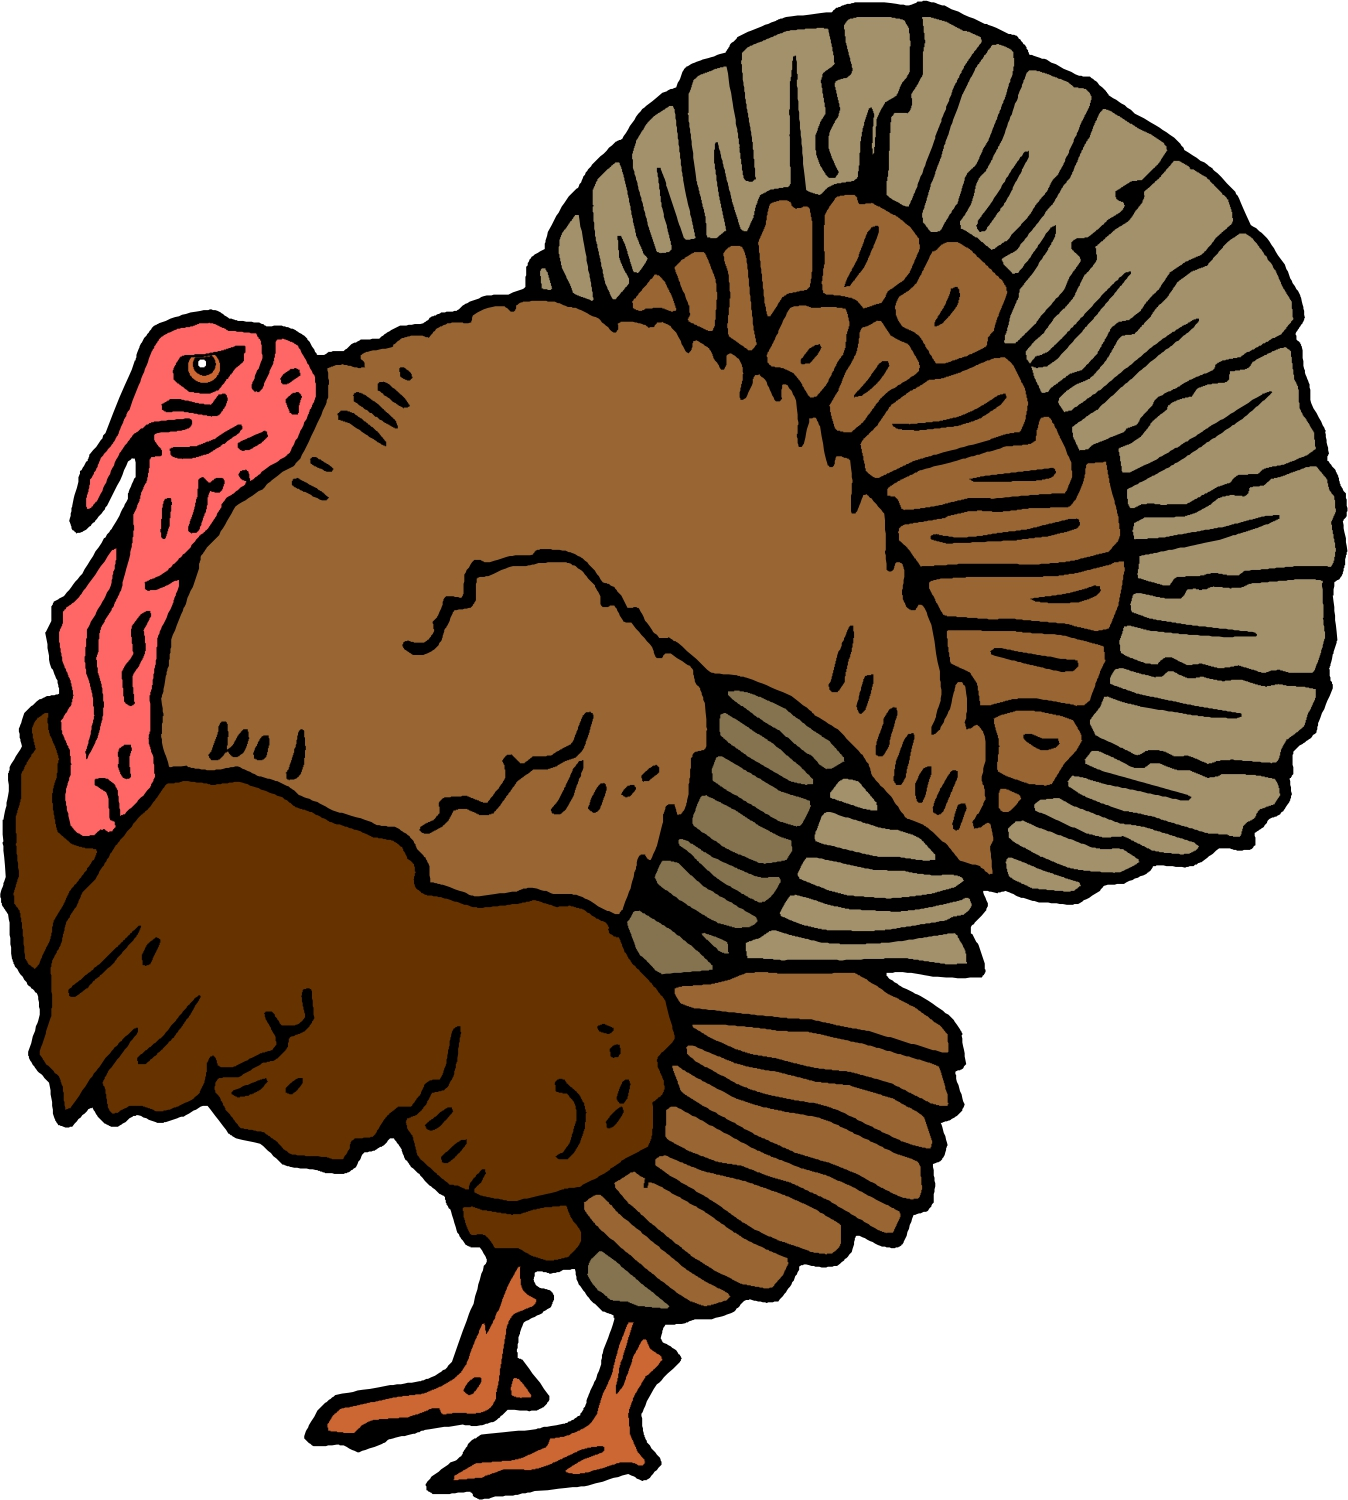 Moving turkey cliparts free download clip art jpg.